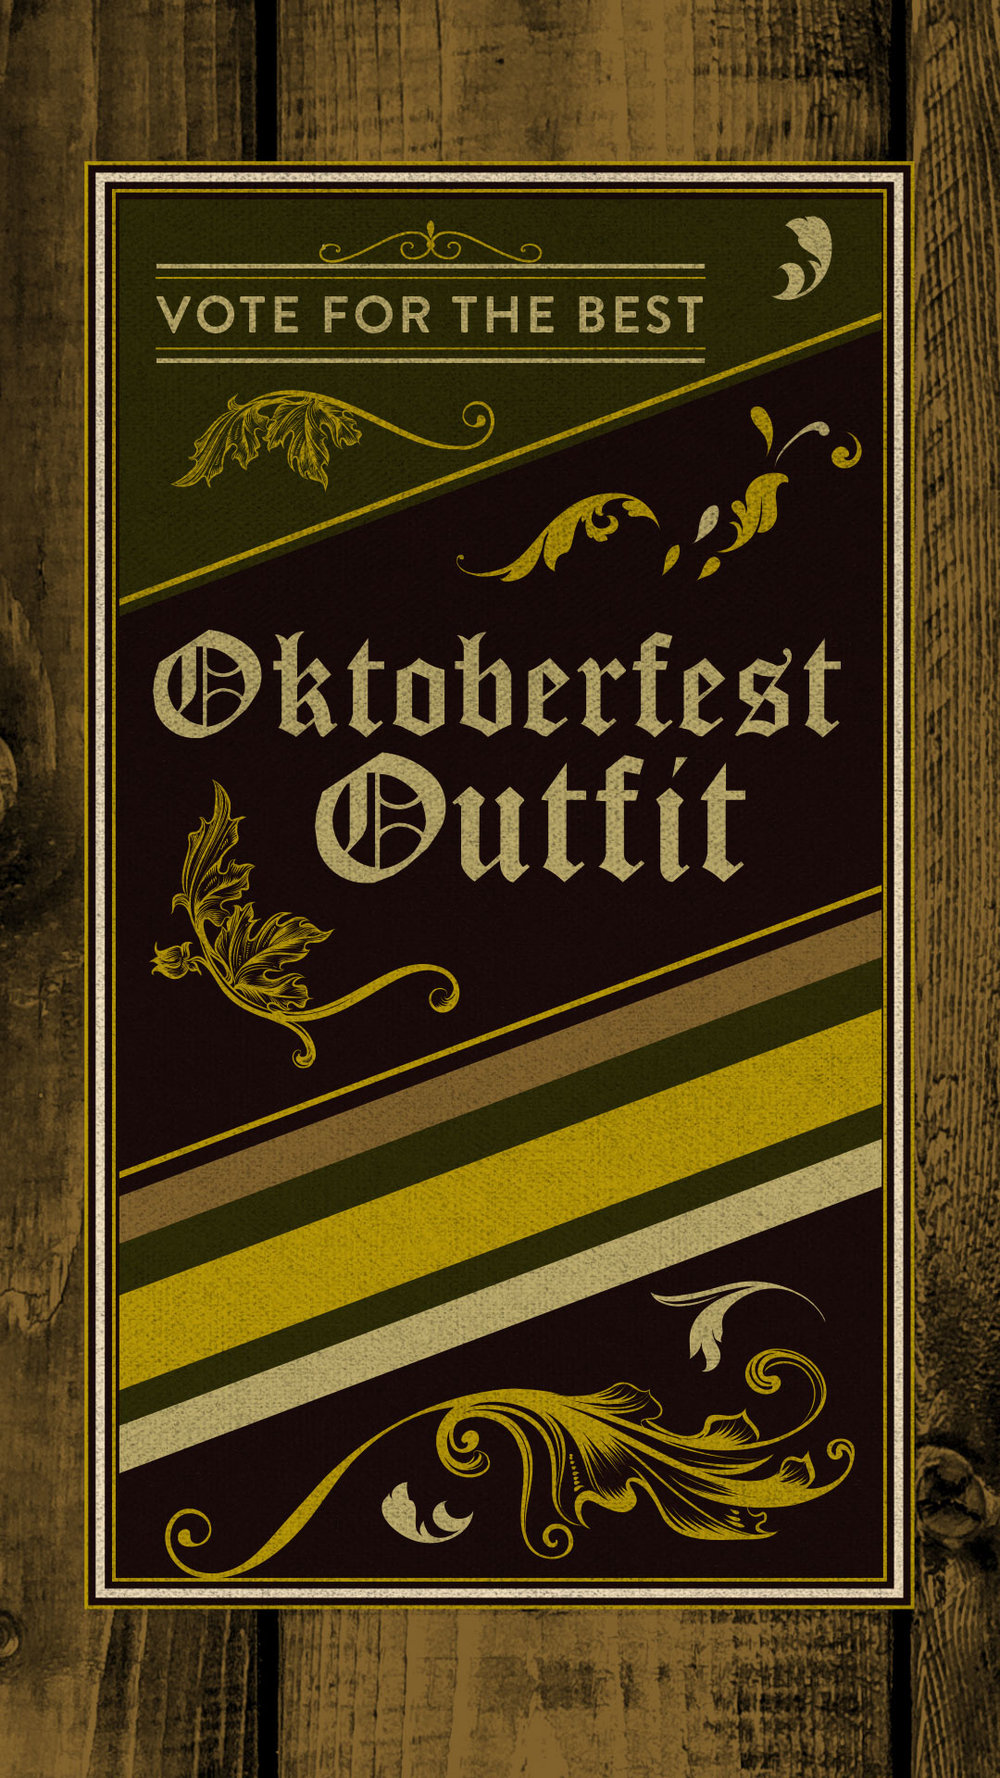 10_Oktoberfect_Outfit-01_rev.png